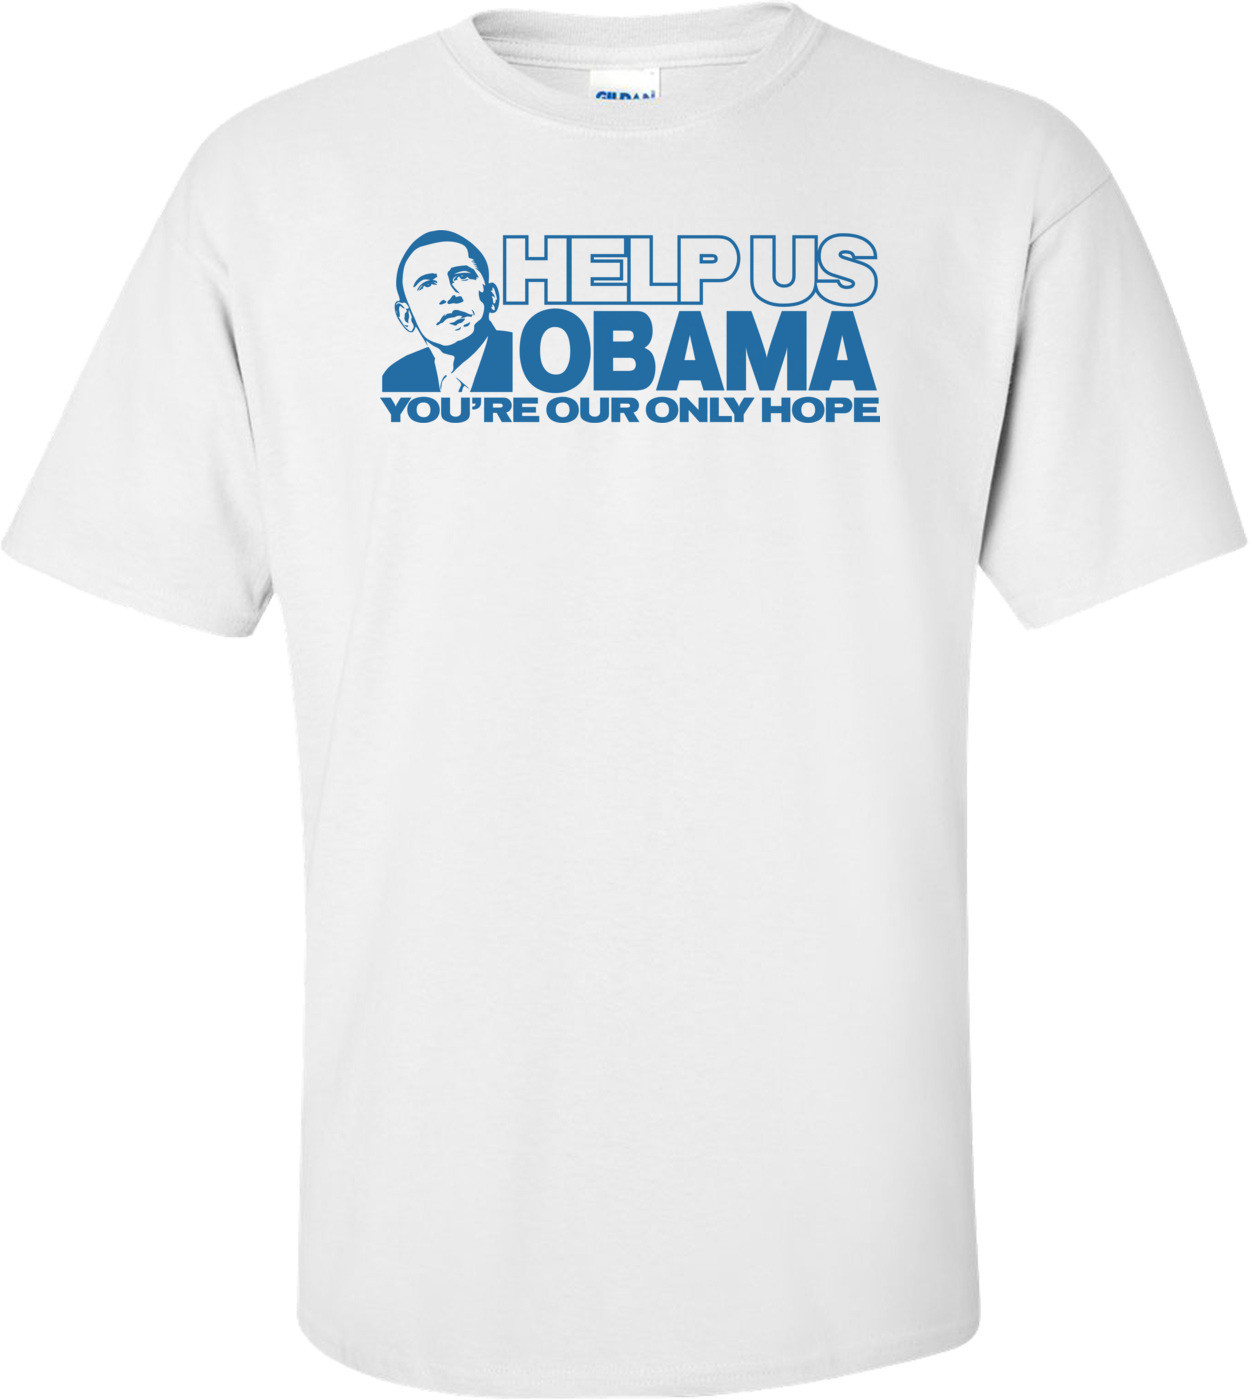 Help Us Obama You're Our Only Hope T-shirt